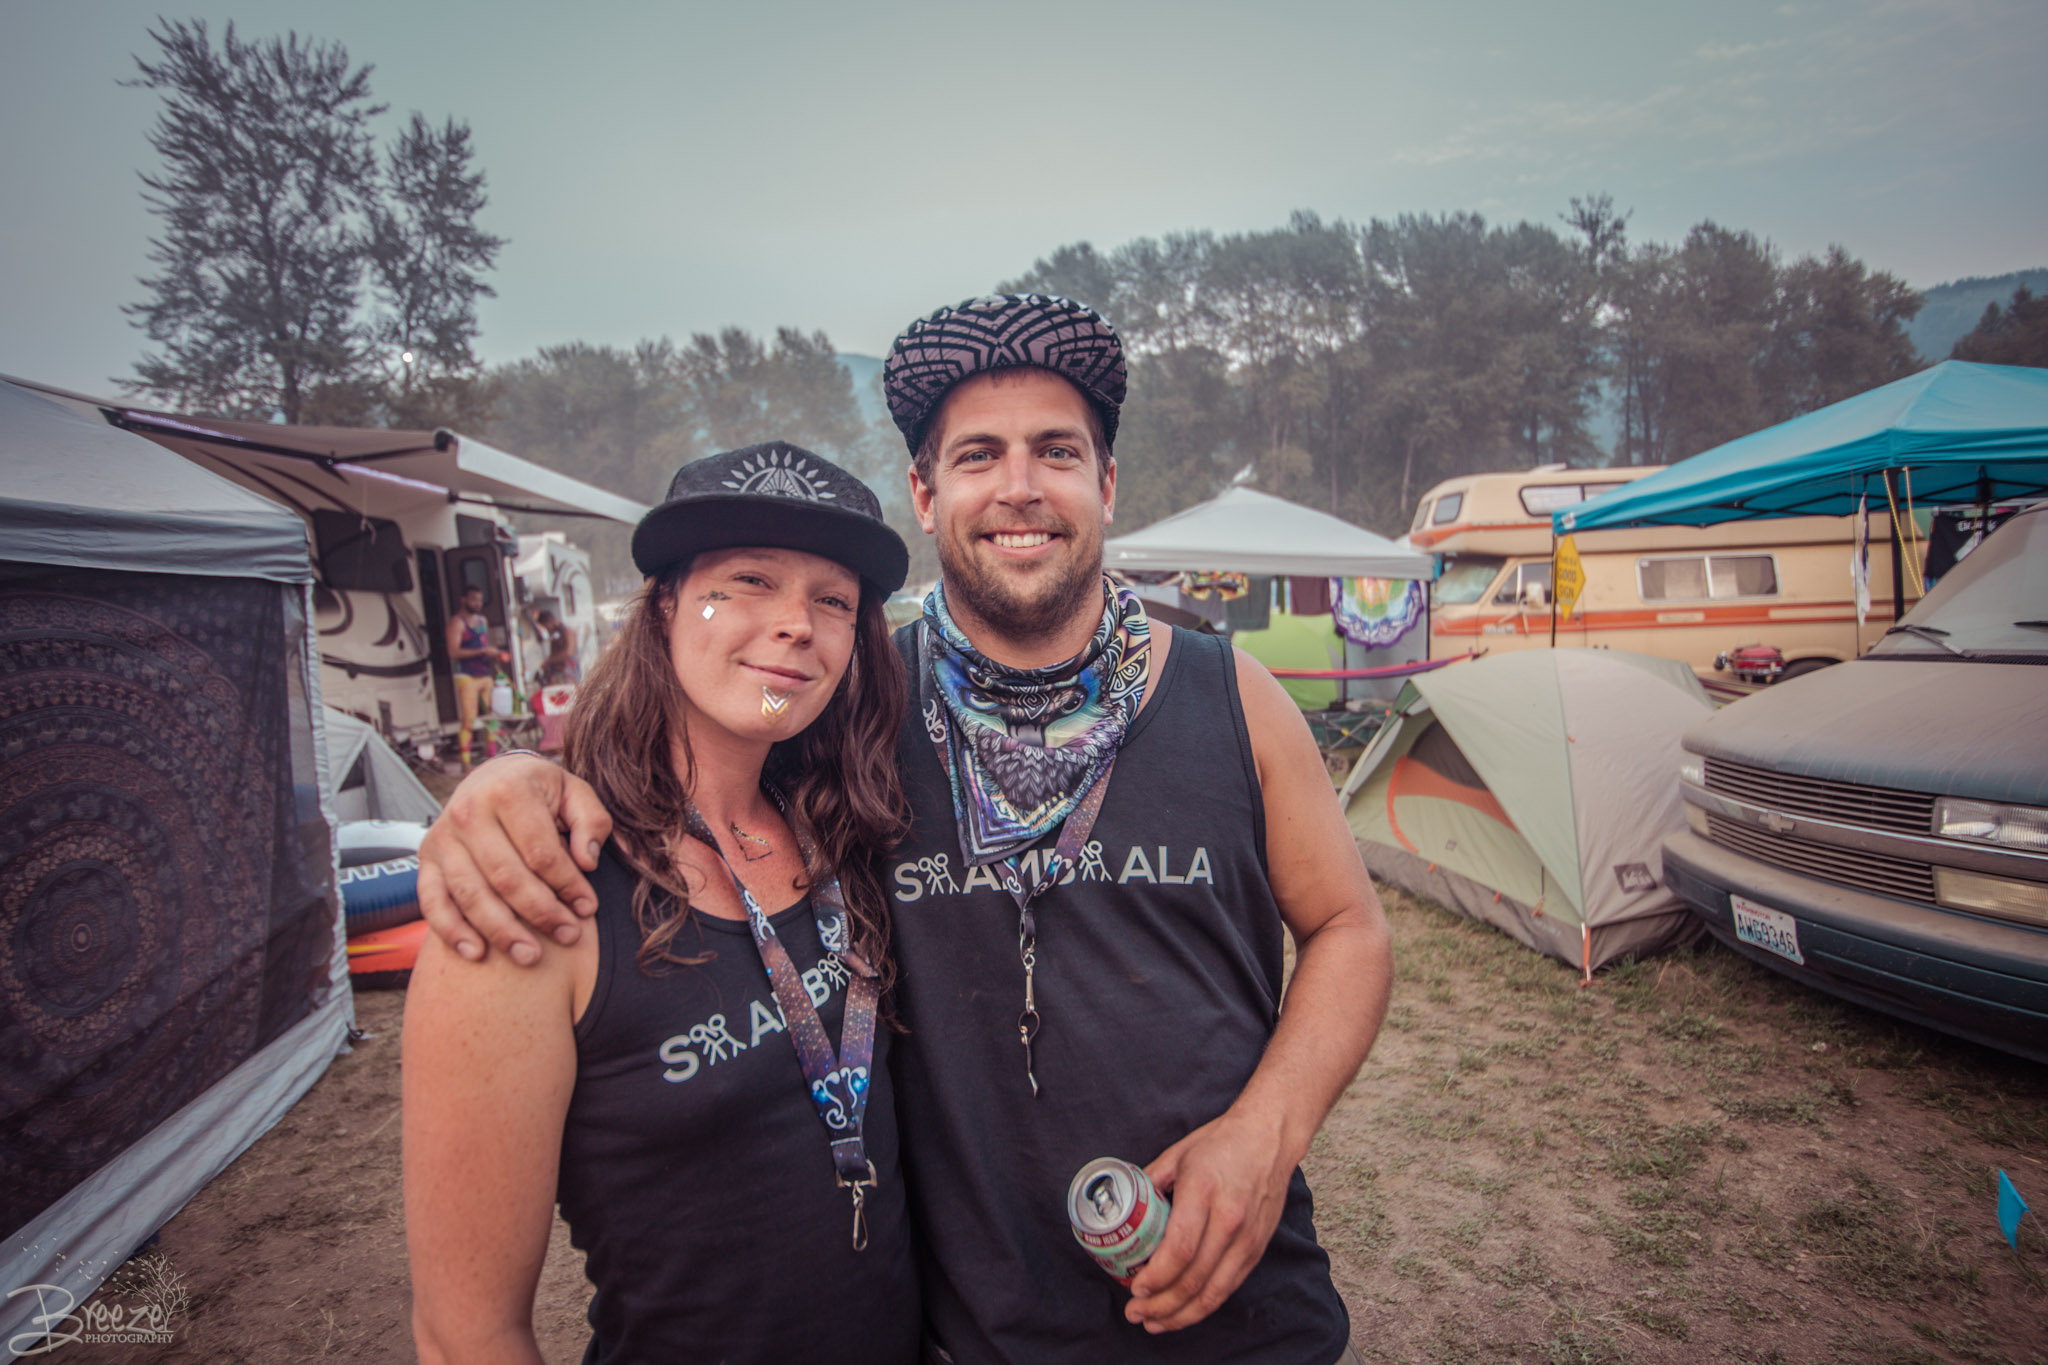 Brie'Ana Breeze Photography & Media - Shambhala 2018-0811.jpg